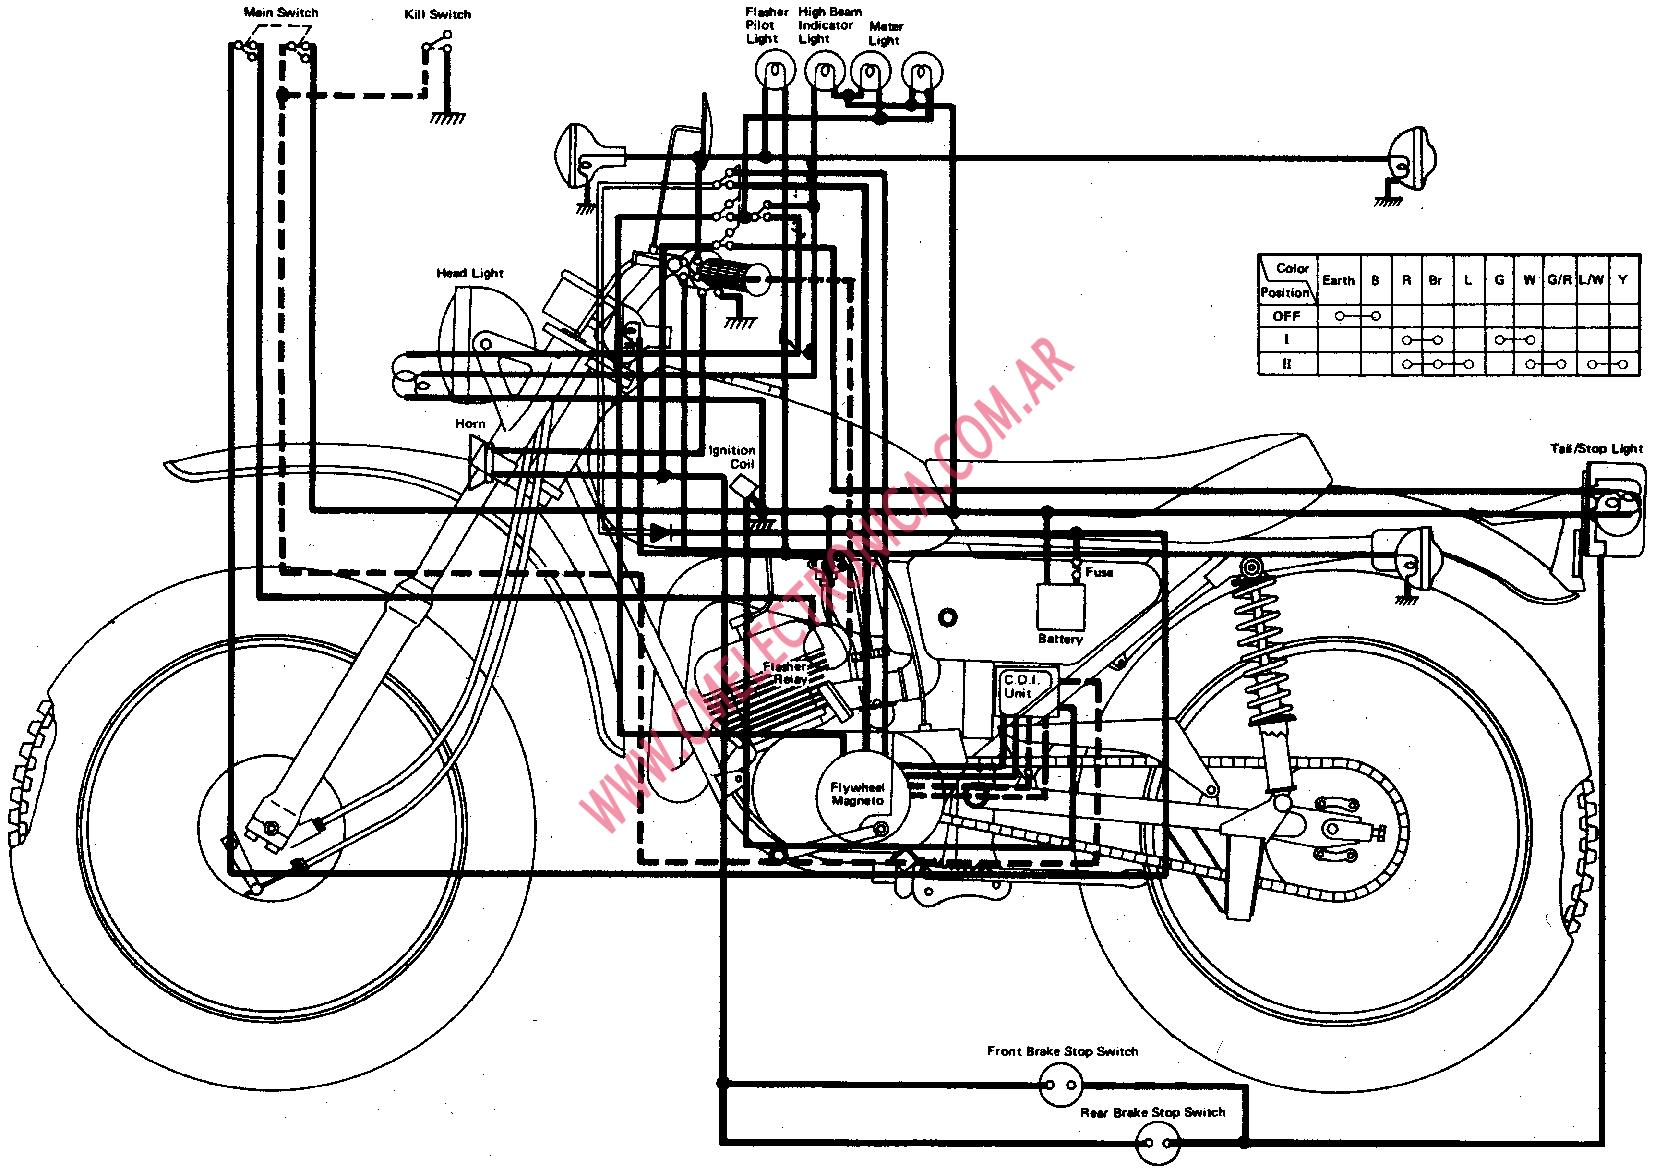 Yamaha dt 100 wiring diagram yamaha wiring diagrams instructions honda xr 125 l wiring diagram yamaha dt 100 wiring diagram at ww5ww cheapraybanclubmaster Gallery